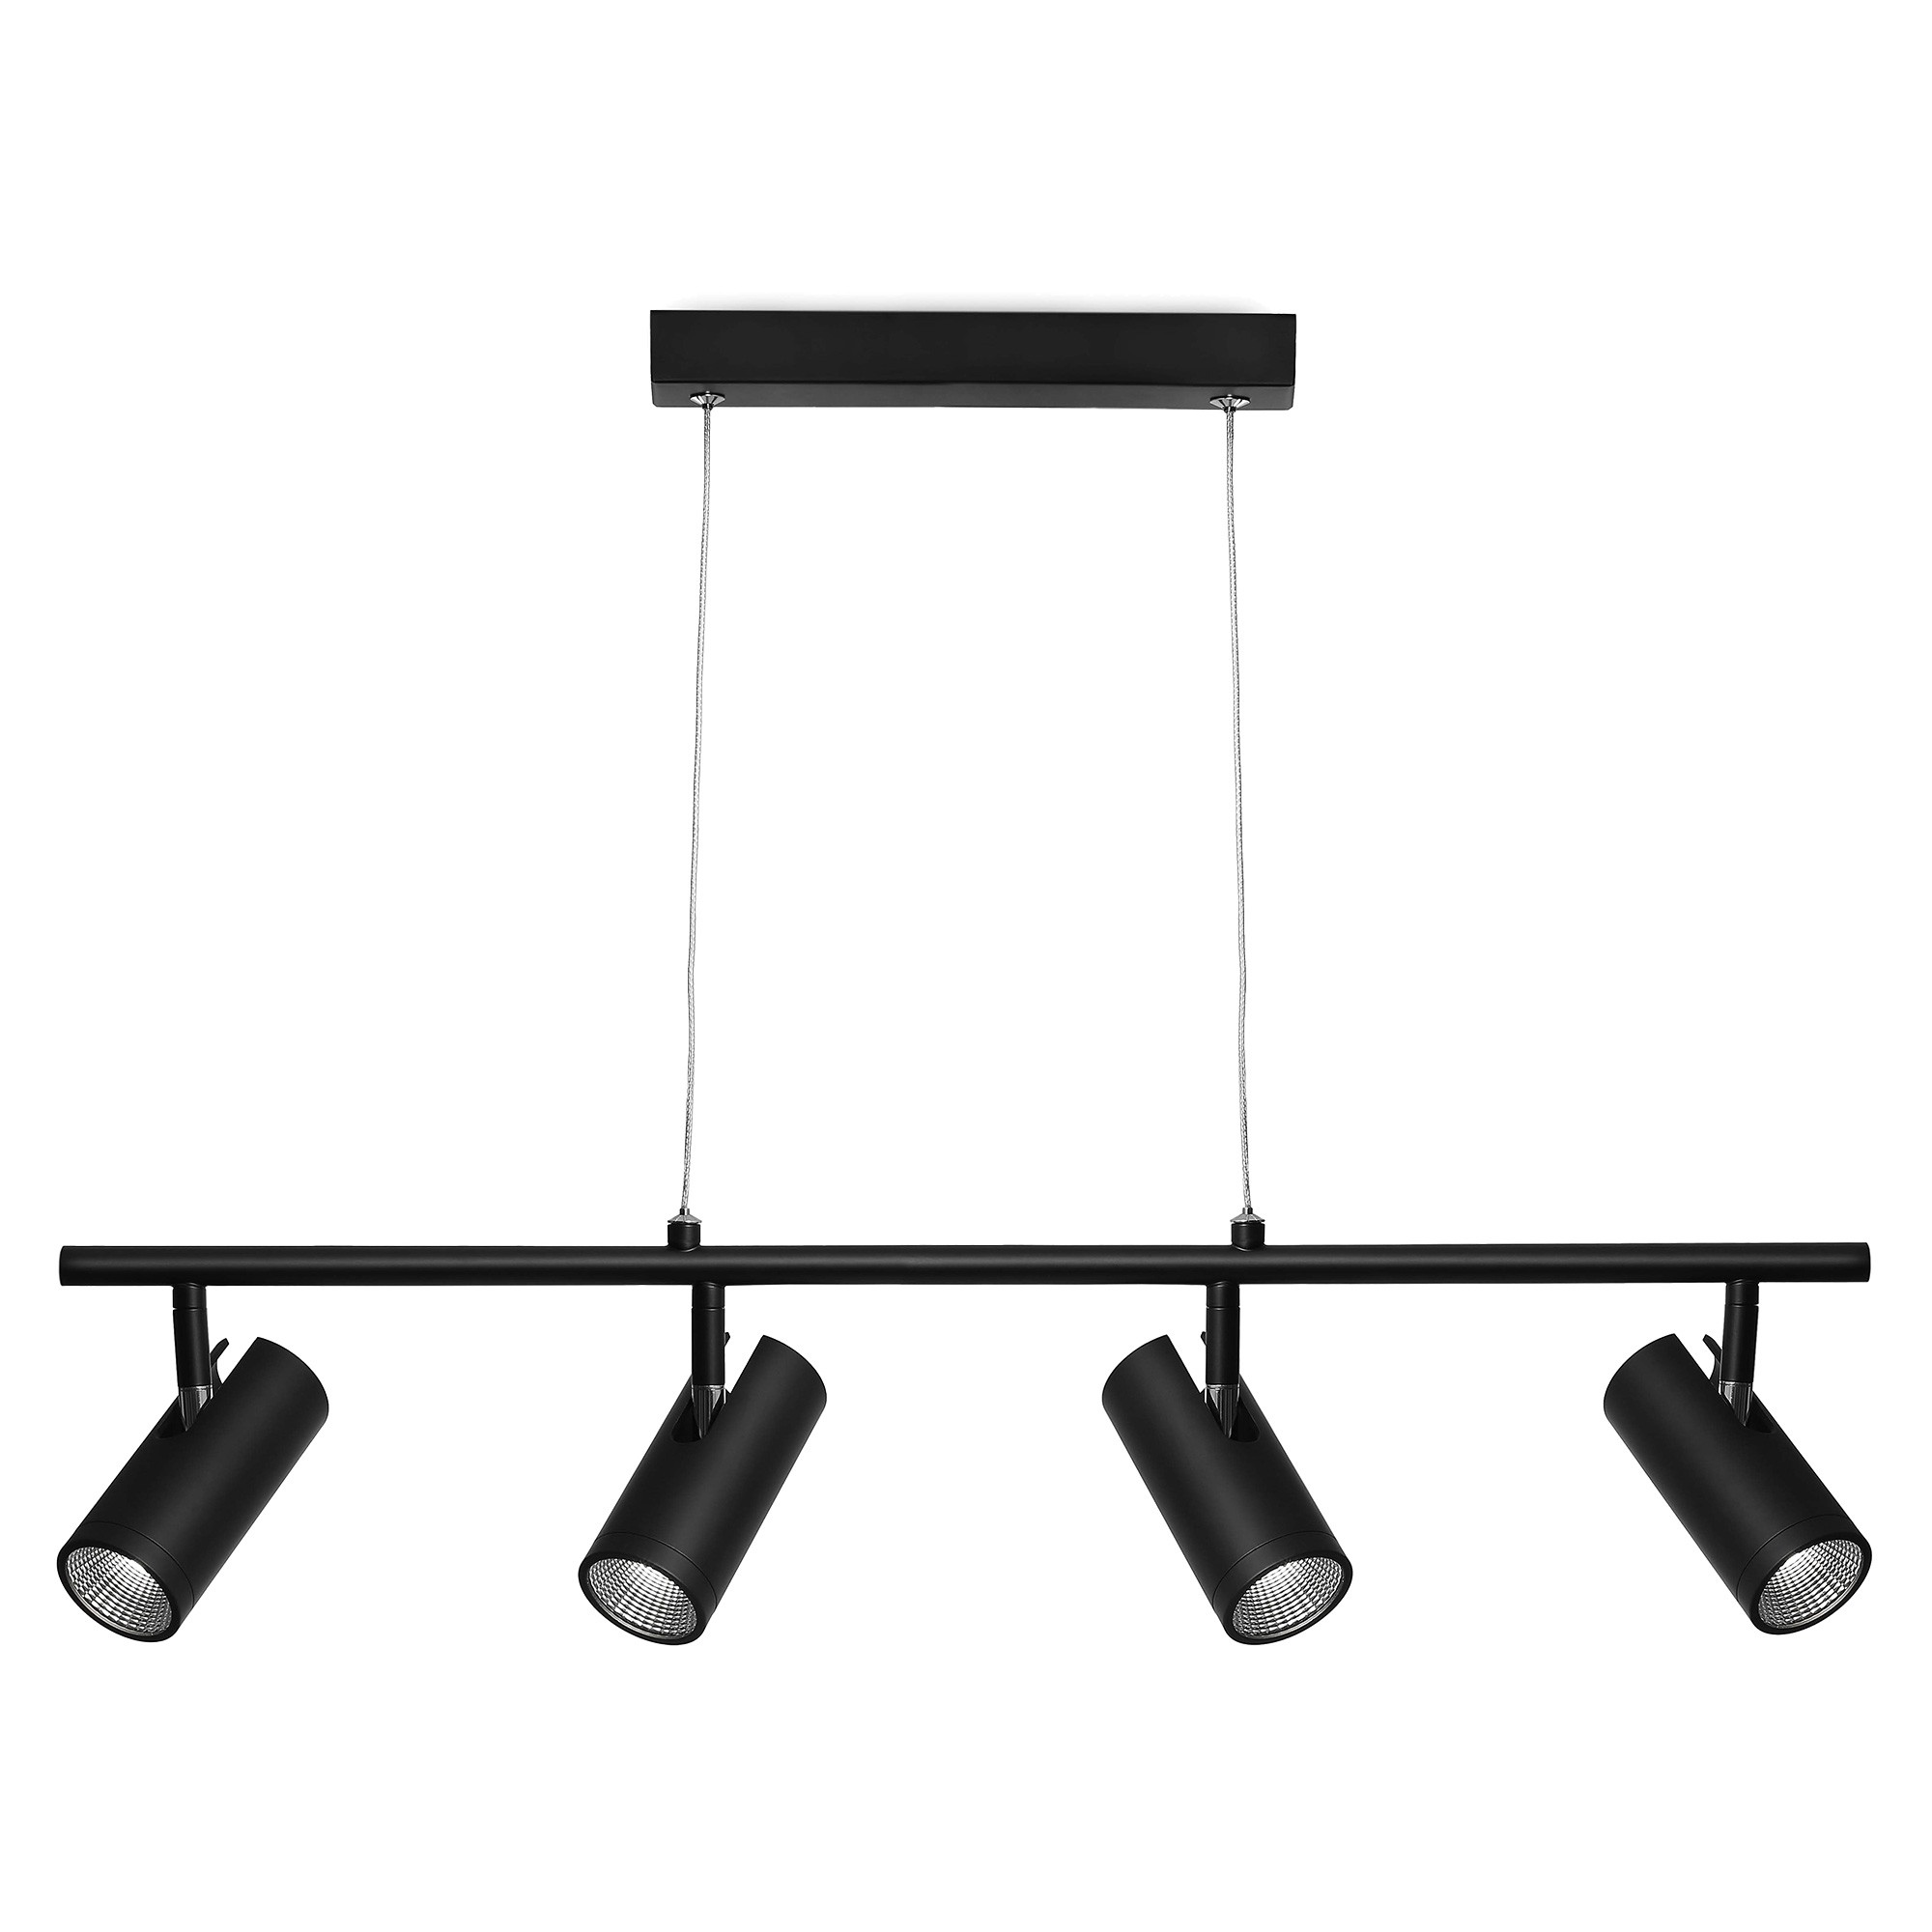 Urban Metal LED Pendant Light, 4 Light, Black